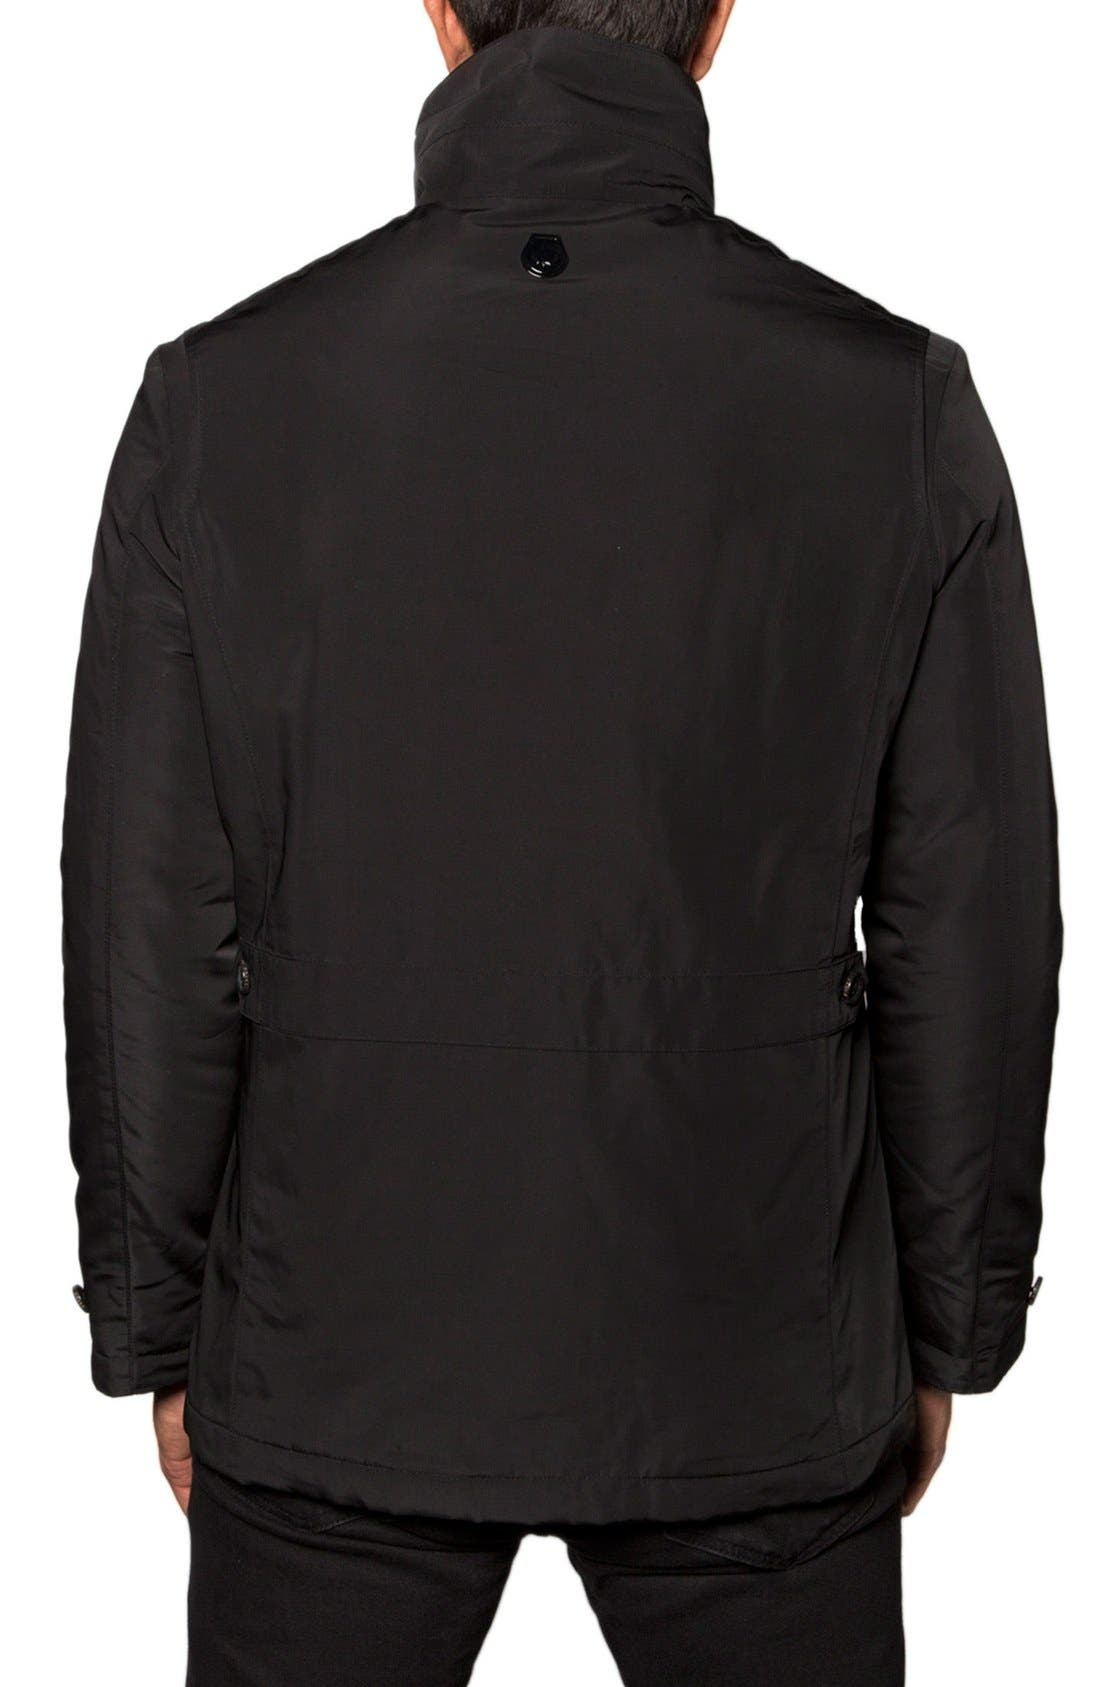 Rome Insulated Jacket,                             Alternate thumbnail 2, color,                             001